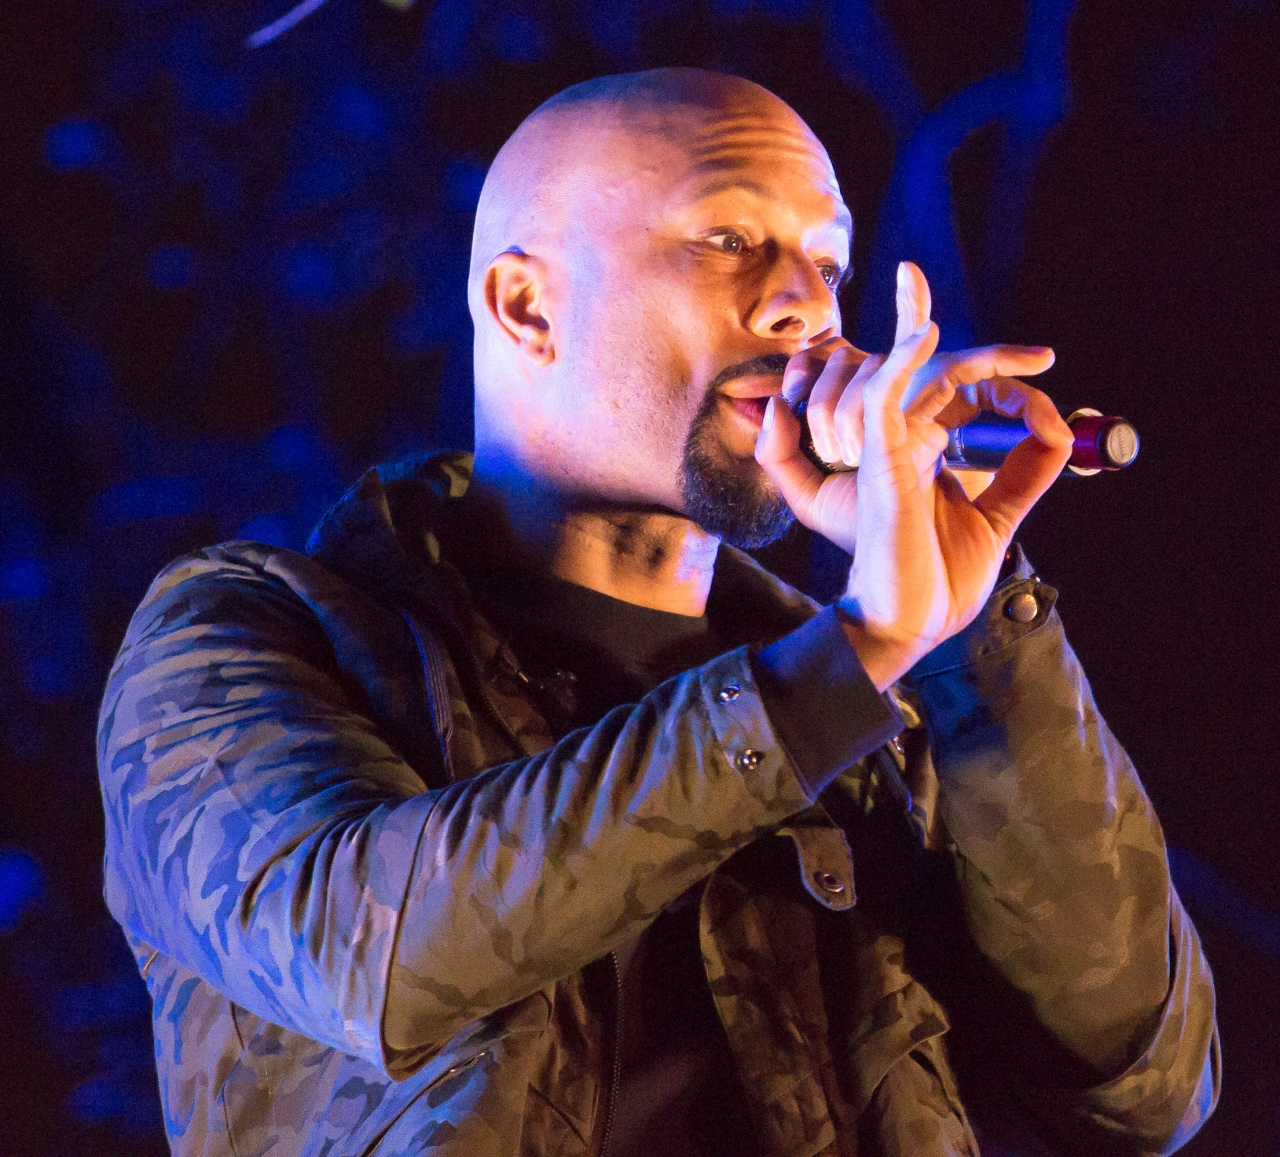 SXSW Music Photos from Intimate Vevo Party with Common, AugustGreene